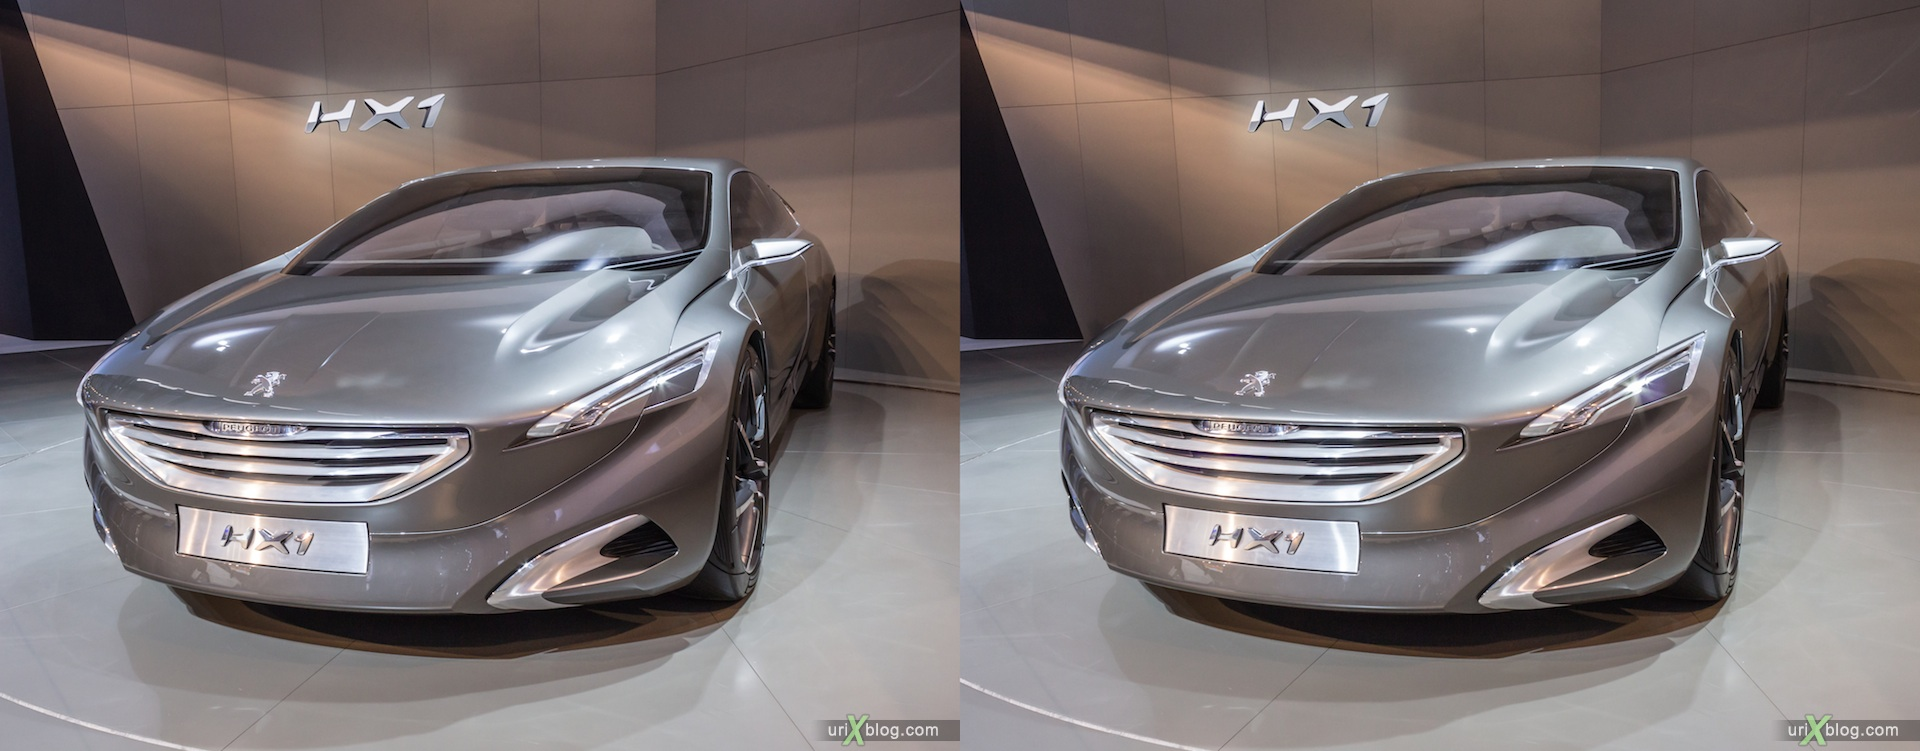 2012, Peugeot HX1, Moscow International Automobile Salon, auto show, 3D, stereo pair, cross-eyed, crossview